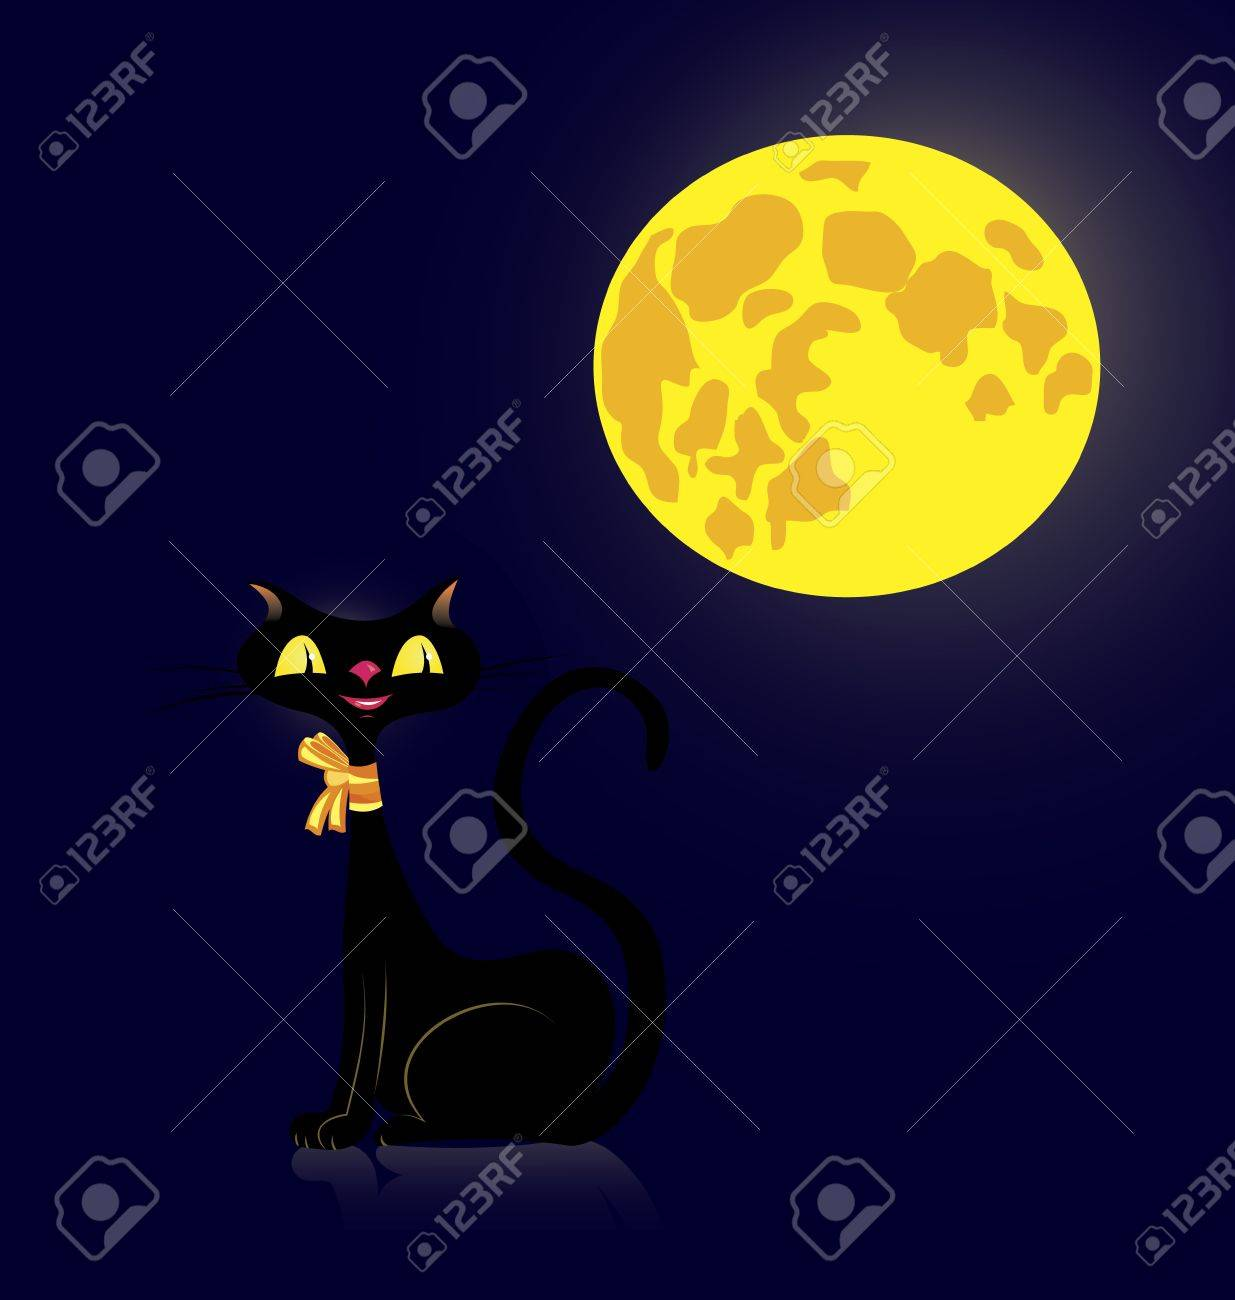 illustration of a black cat in the night Stock Vector - 14579200